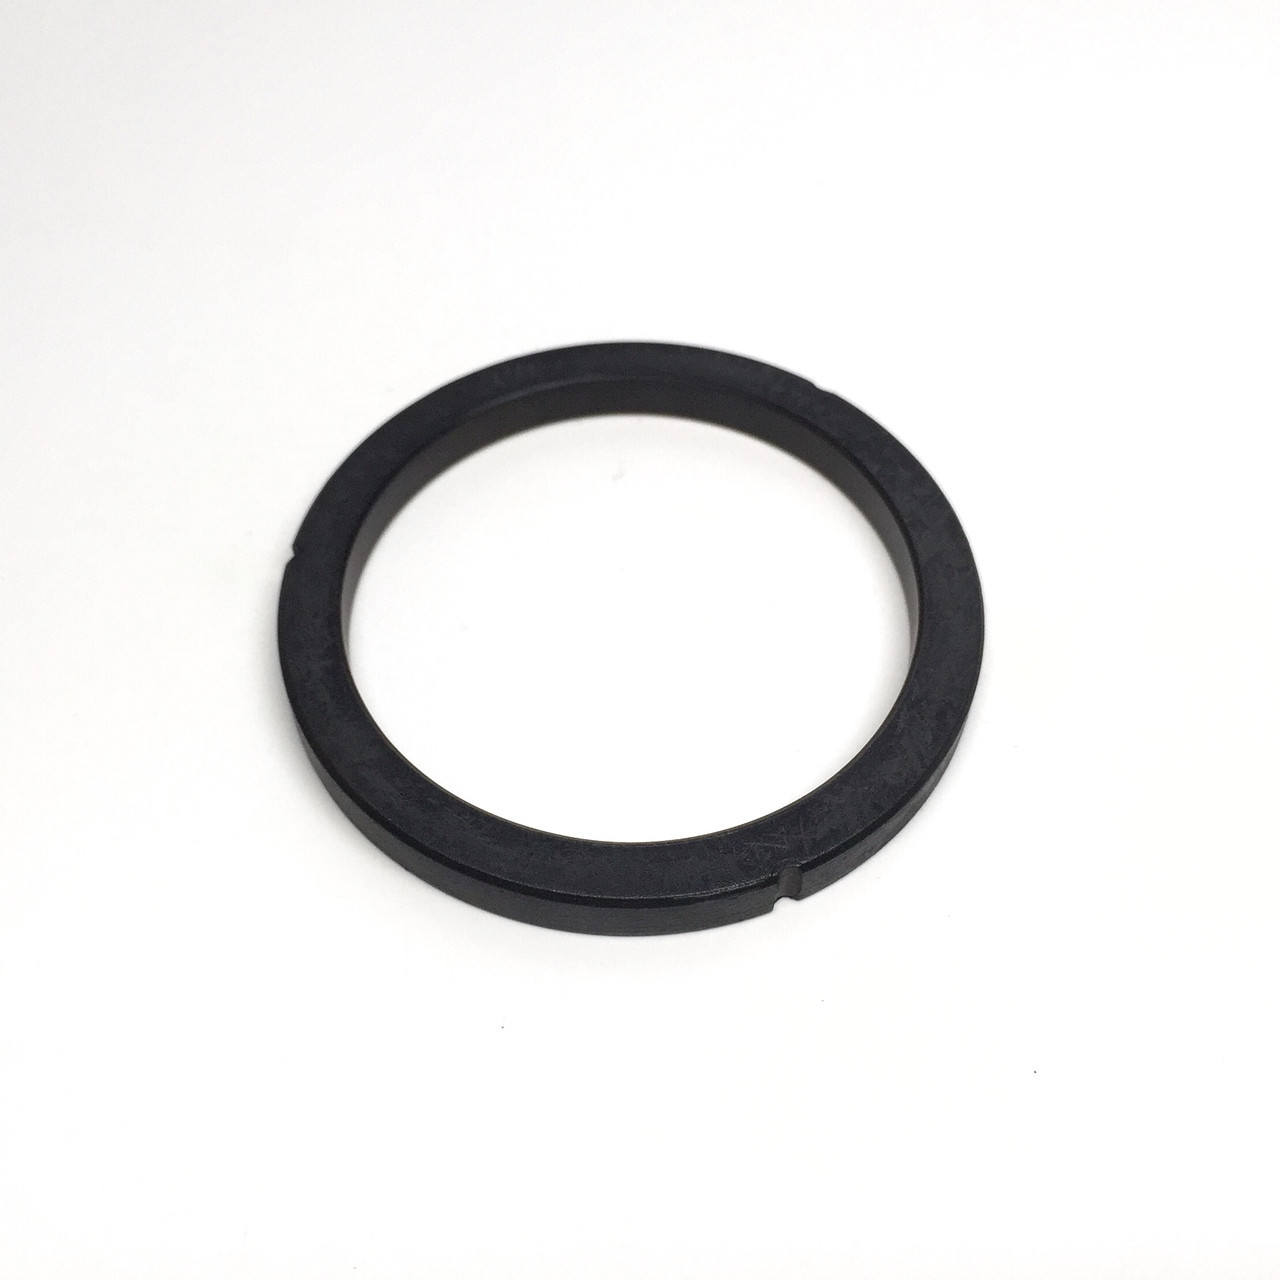 6mm Group Gasket- fits San Marco